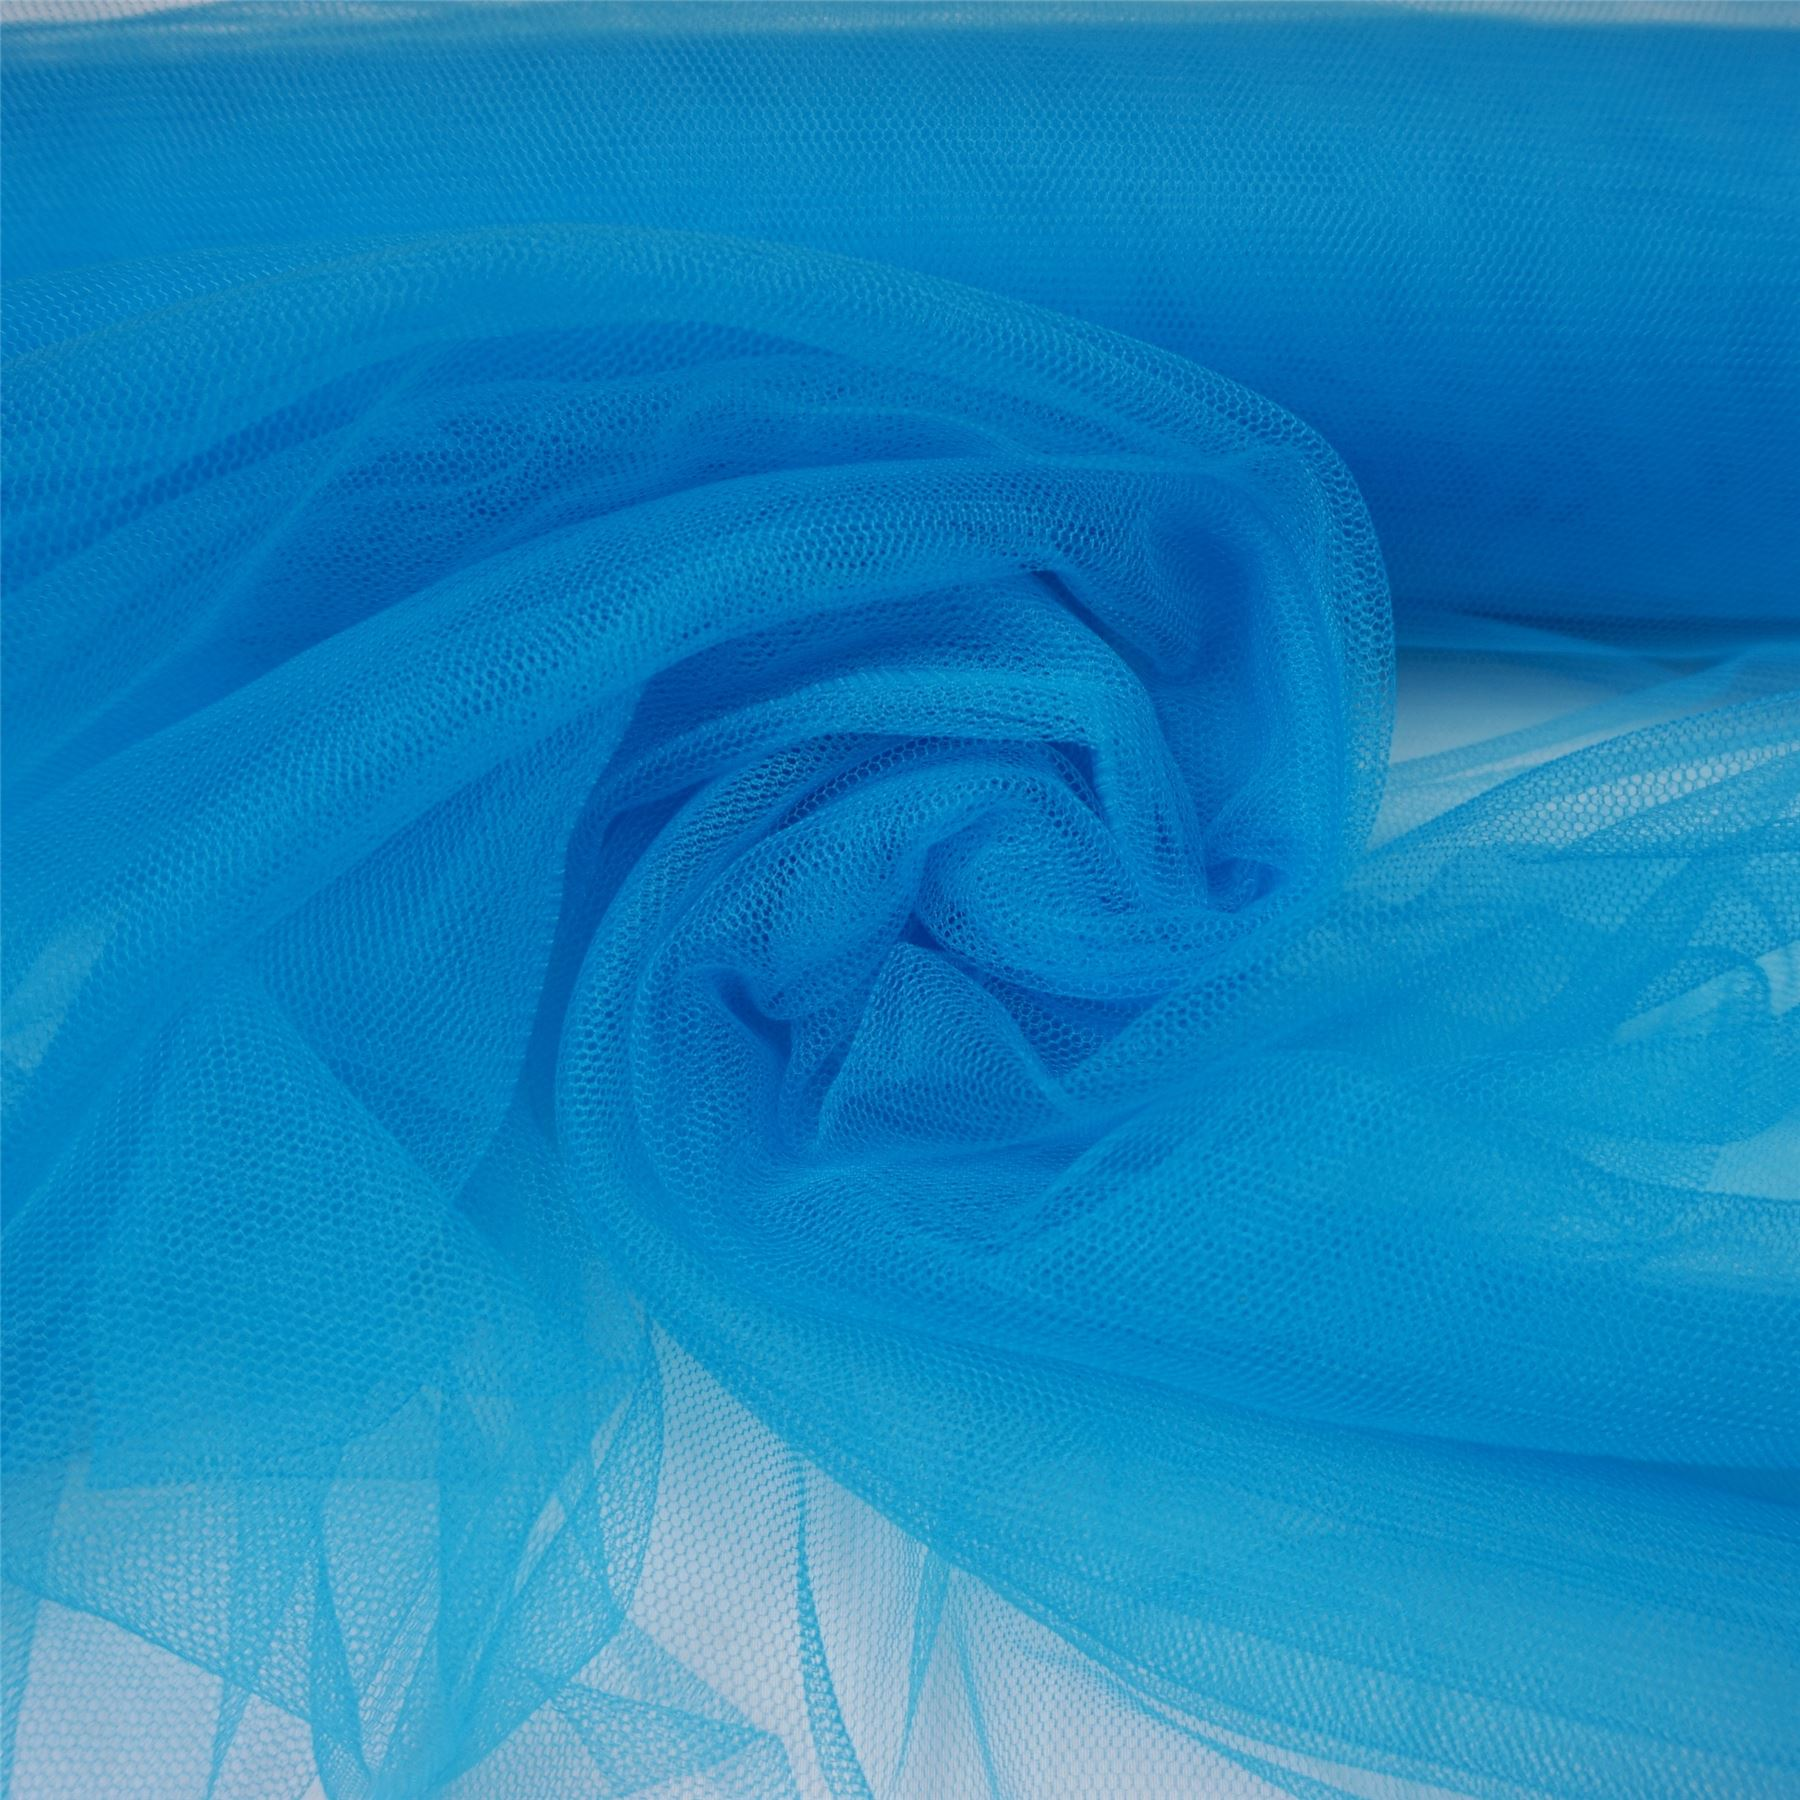 soft tulle veiling net fabric various colours per metre wedding decoration ebay. Black Bedroom Furniture Sets. Home Design Ideas